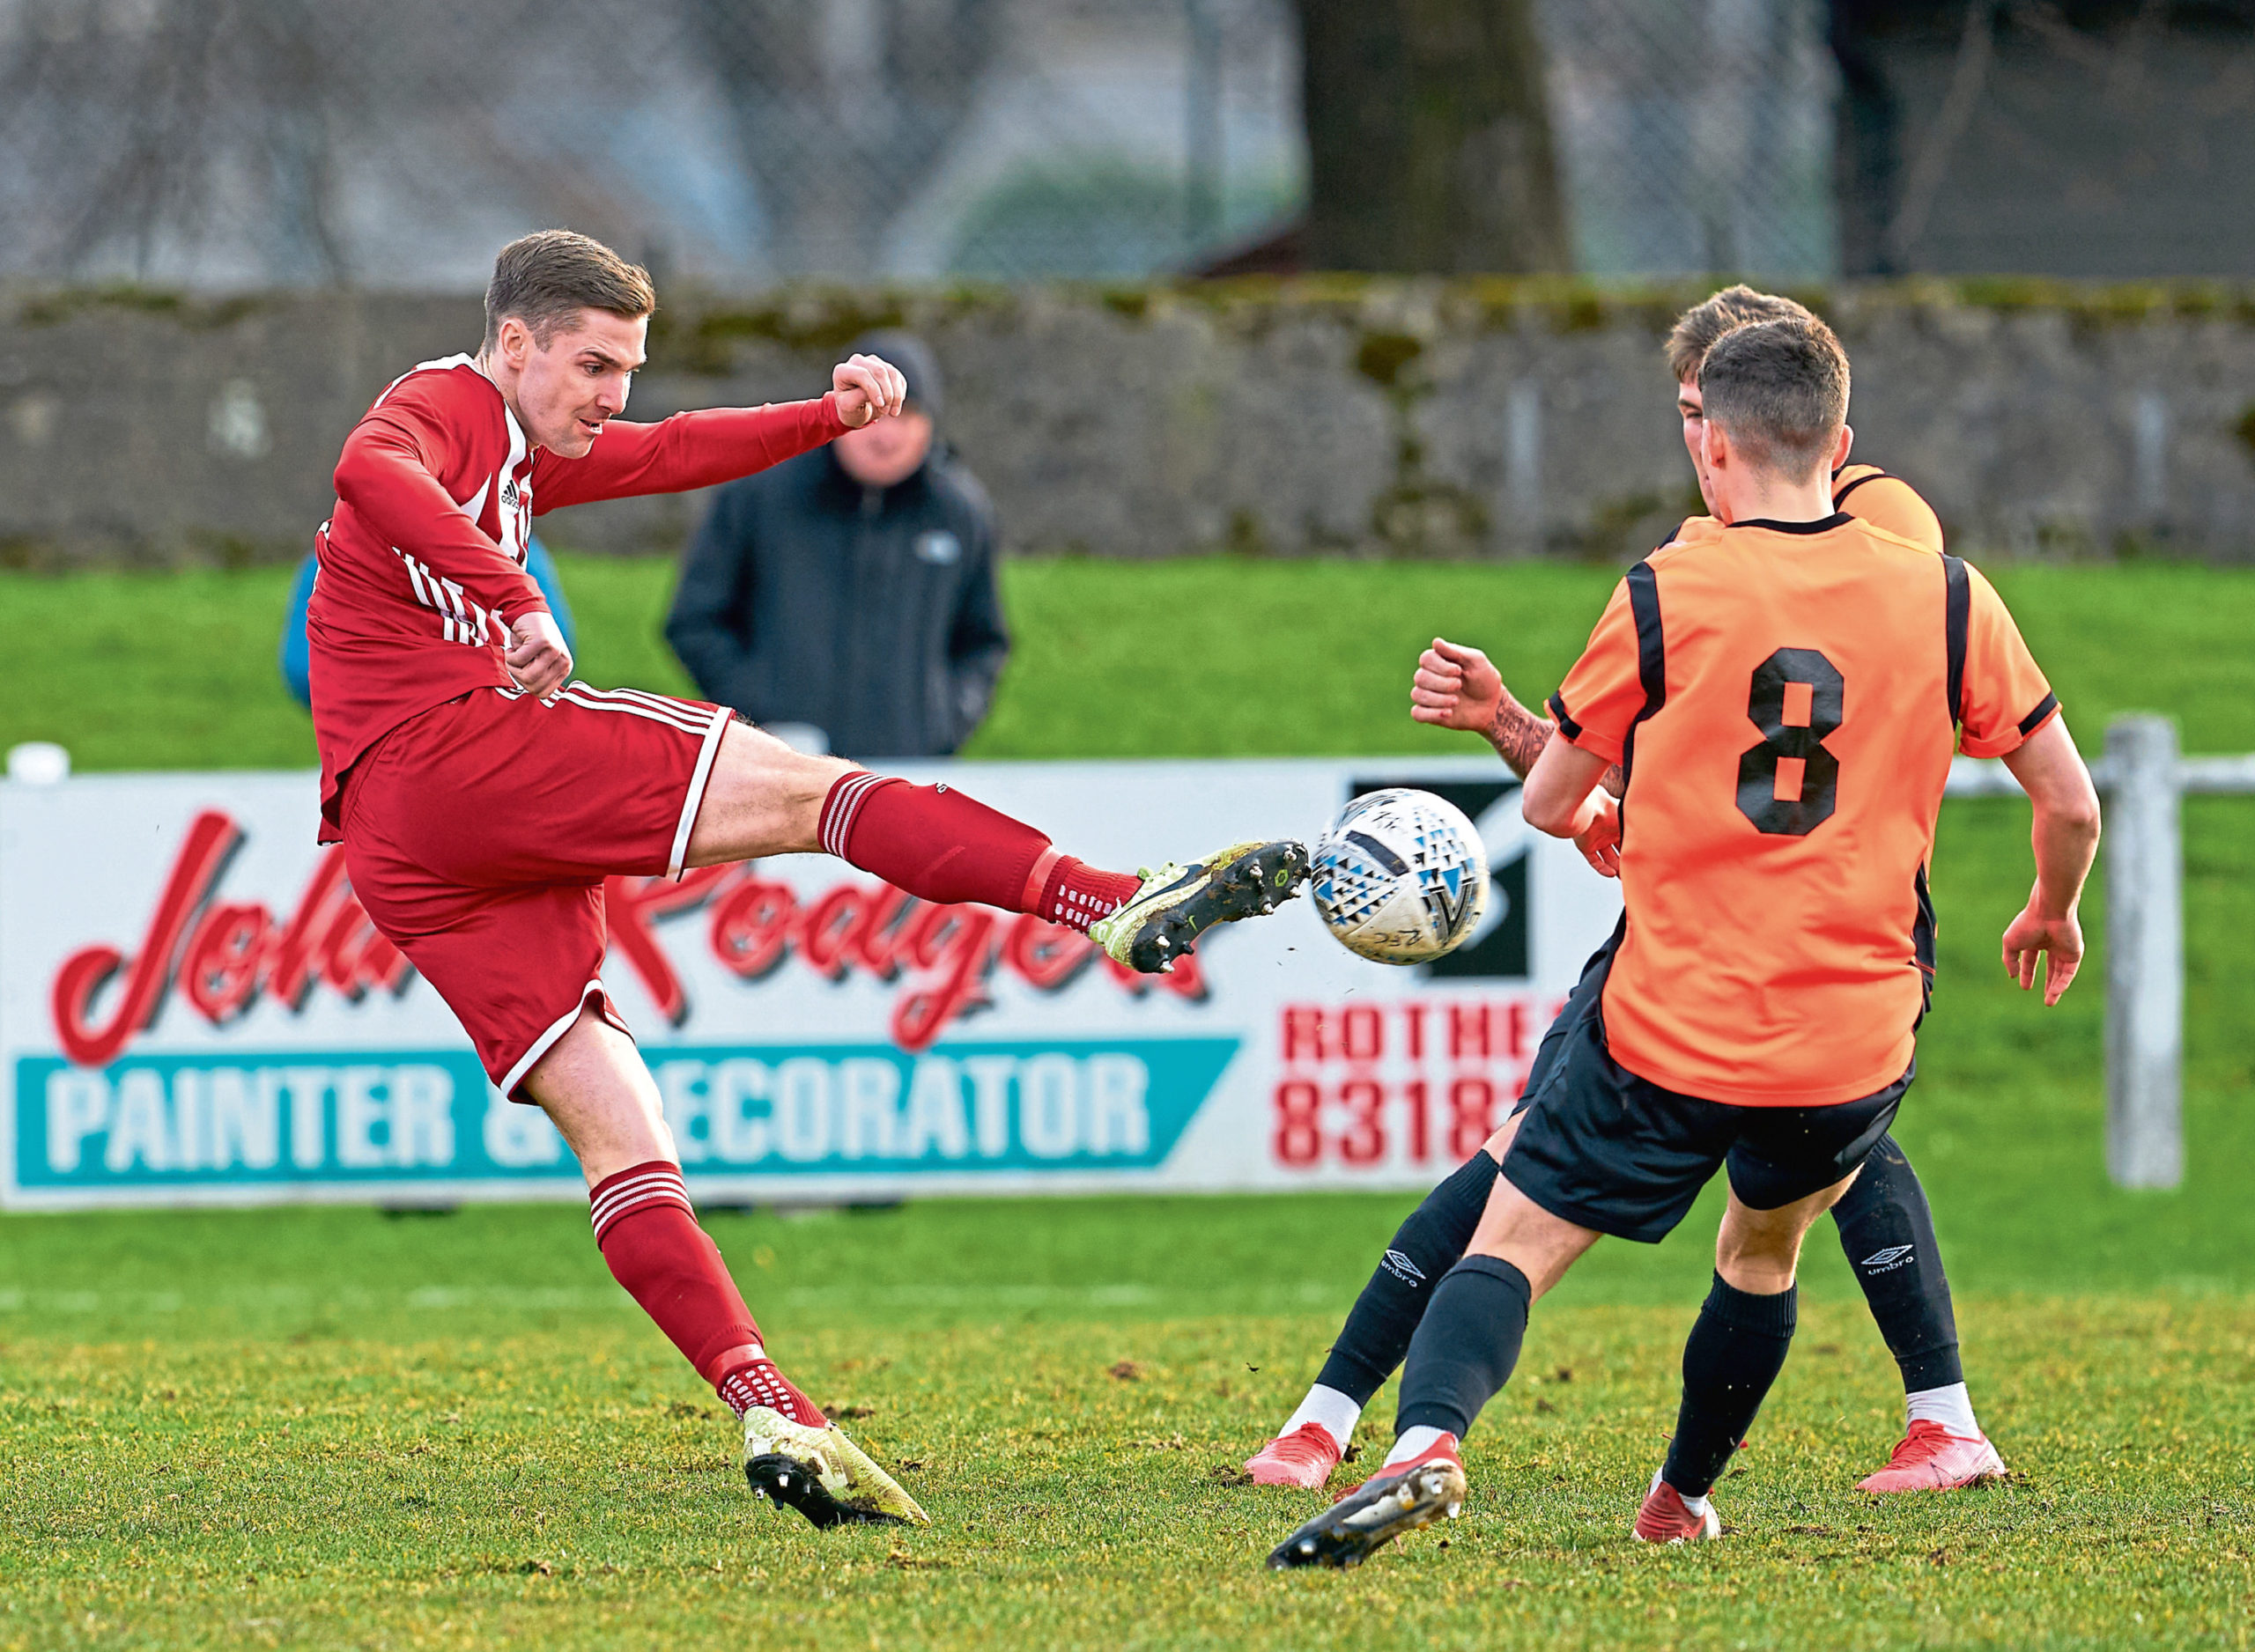 Formartine's Graham Rodger competes for possession.